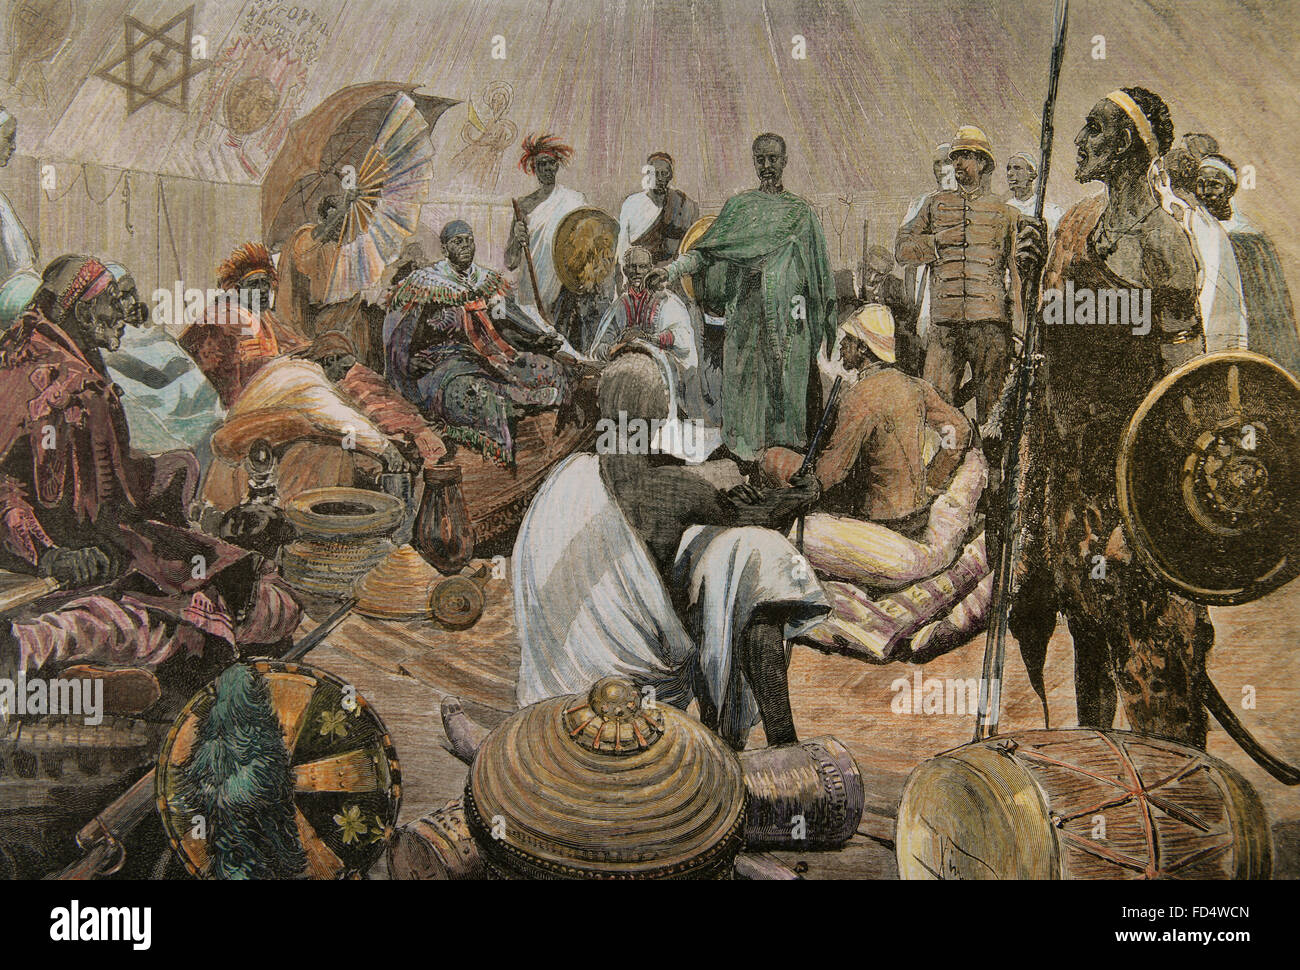 The First Italo-Ethiopian War  (1895-1896). Italians in Abyssinia. Major Tommaso Salsa and Captain Annibale Anghera - Stock Image